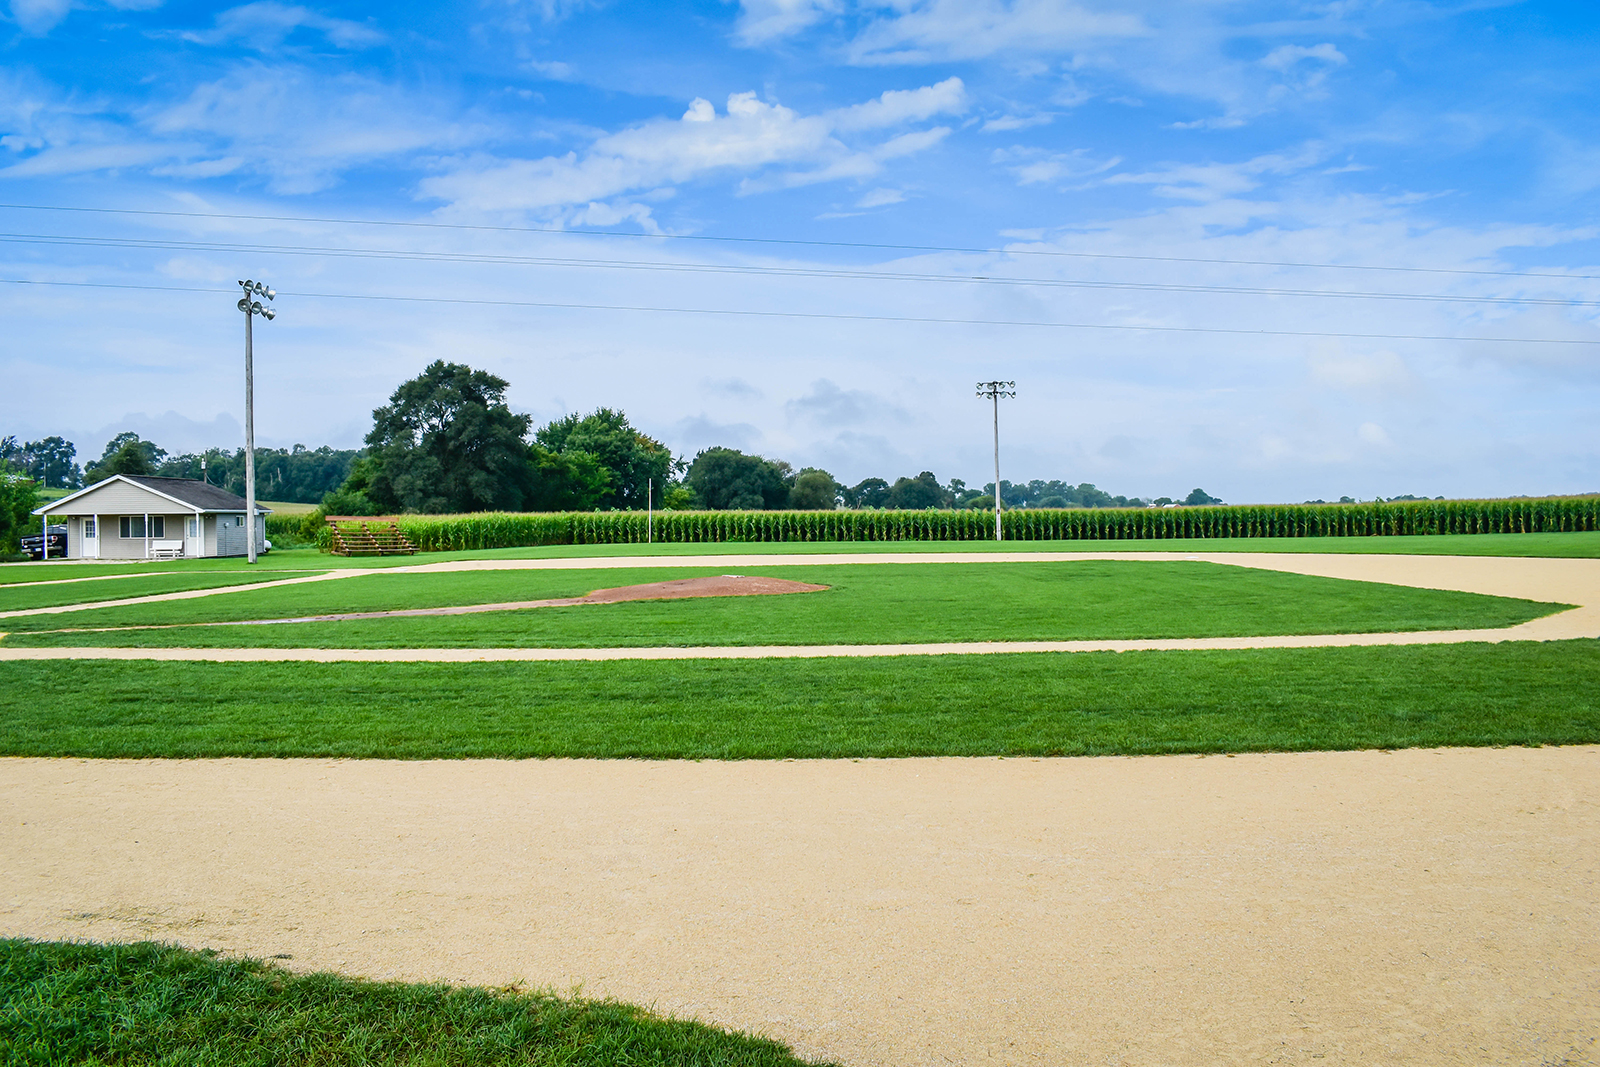 The Field of Dreams baseball field located near Dyersville, Iowa.